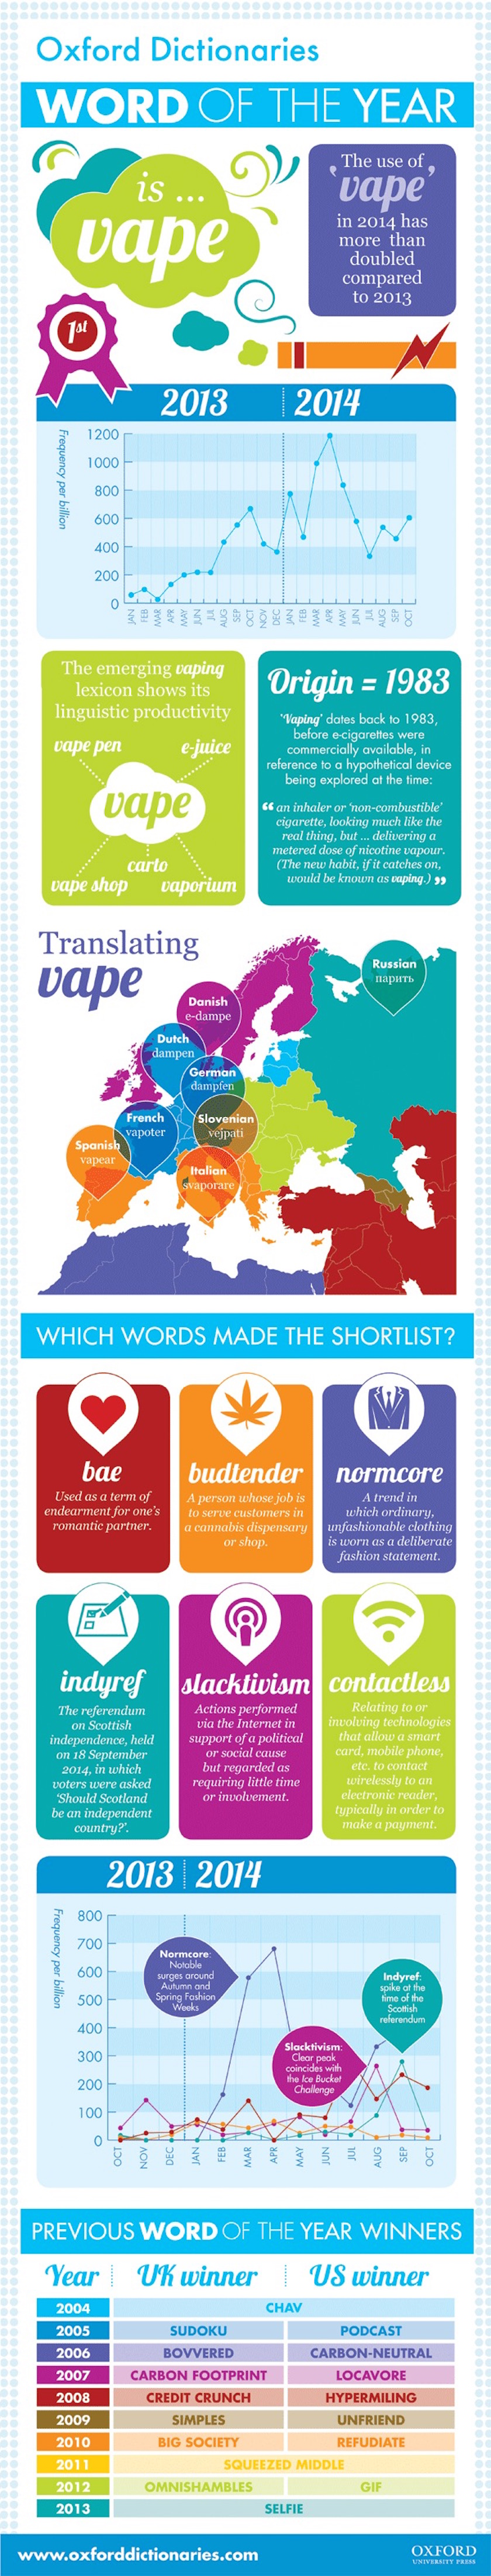 Word of the year 2014 #infographic